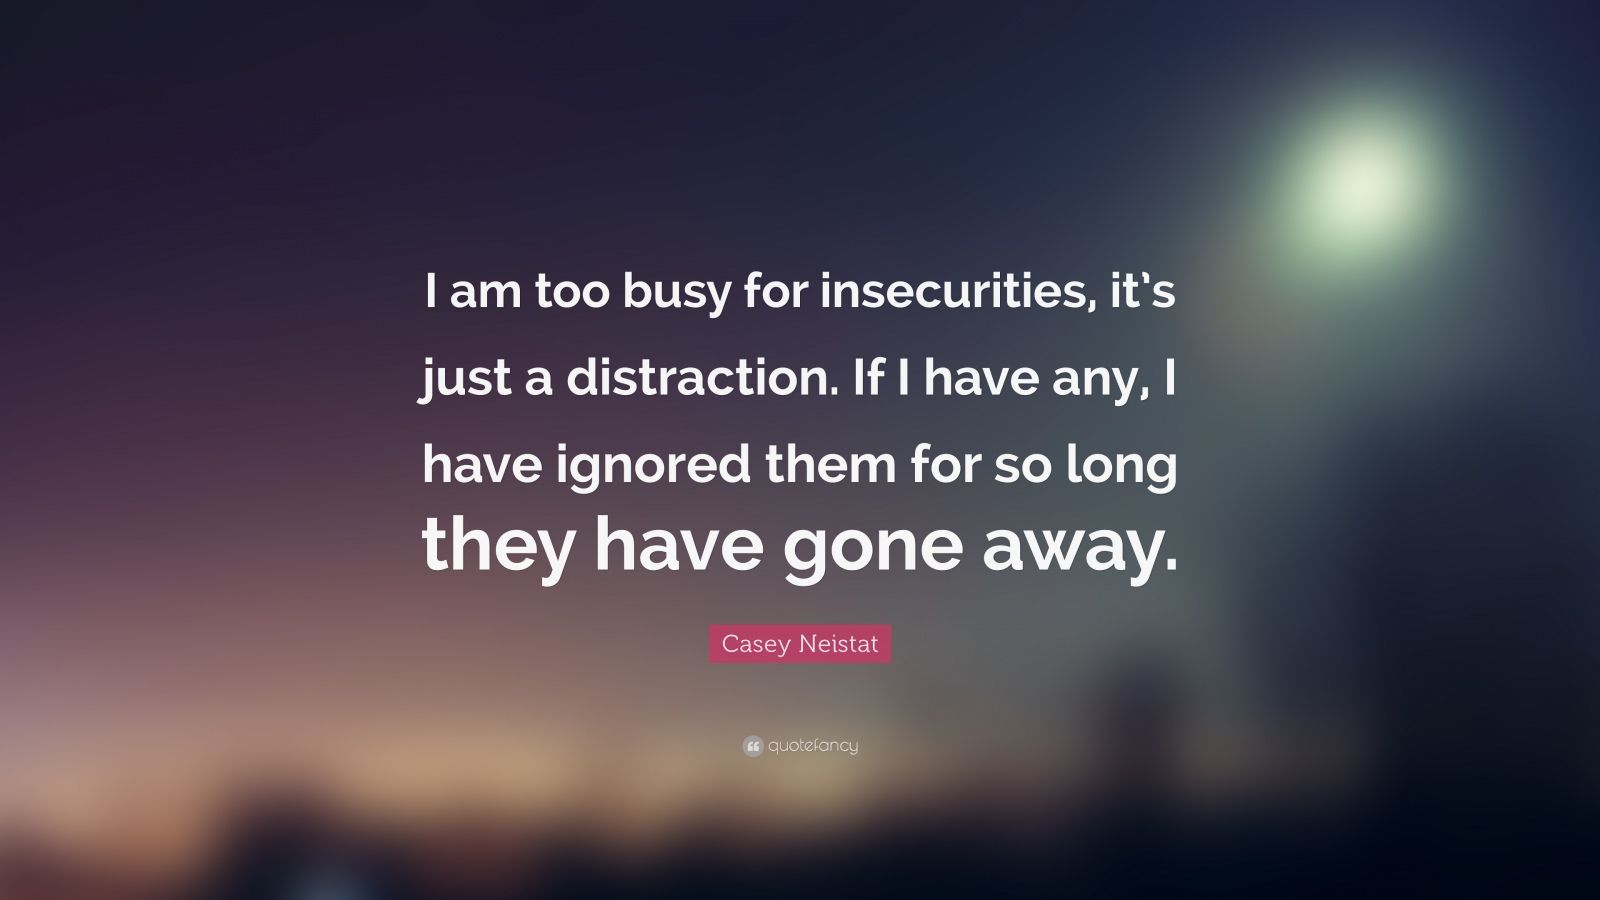 """Casey Neistat Quote: """"I am too busy for insecurities, it's just a distraction. If I have any, I have ignored them for so long they have gone away."""""""